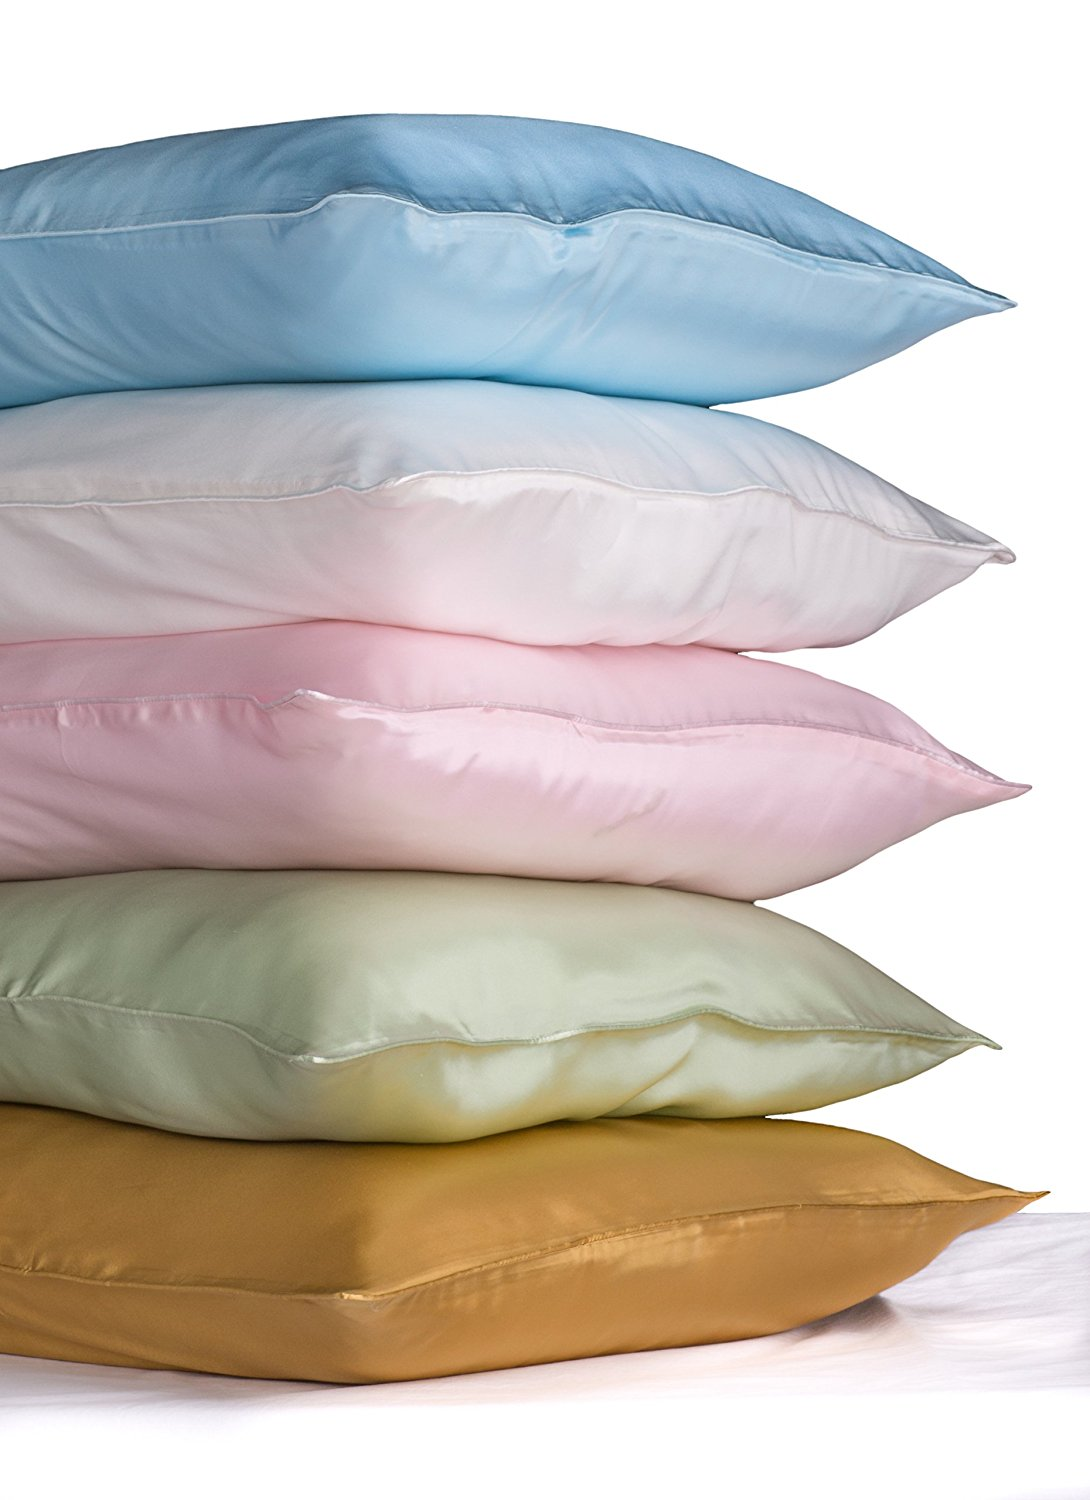 Silk Pillowcases- Texere Silk Solid Silk Pillowcase